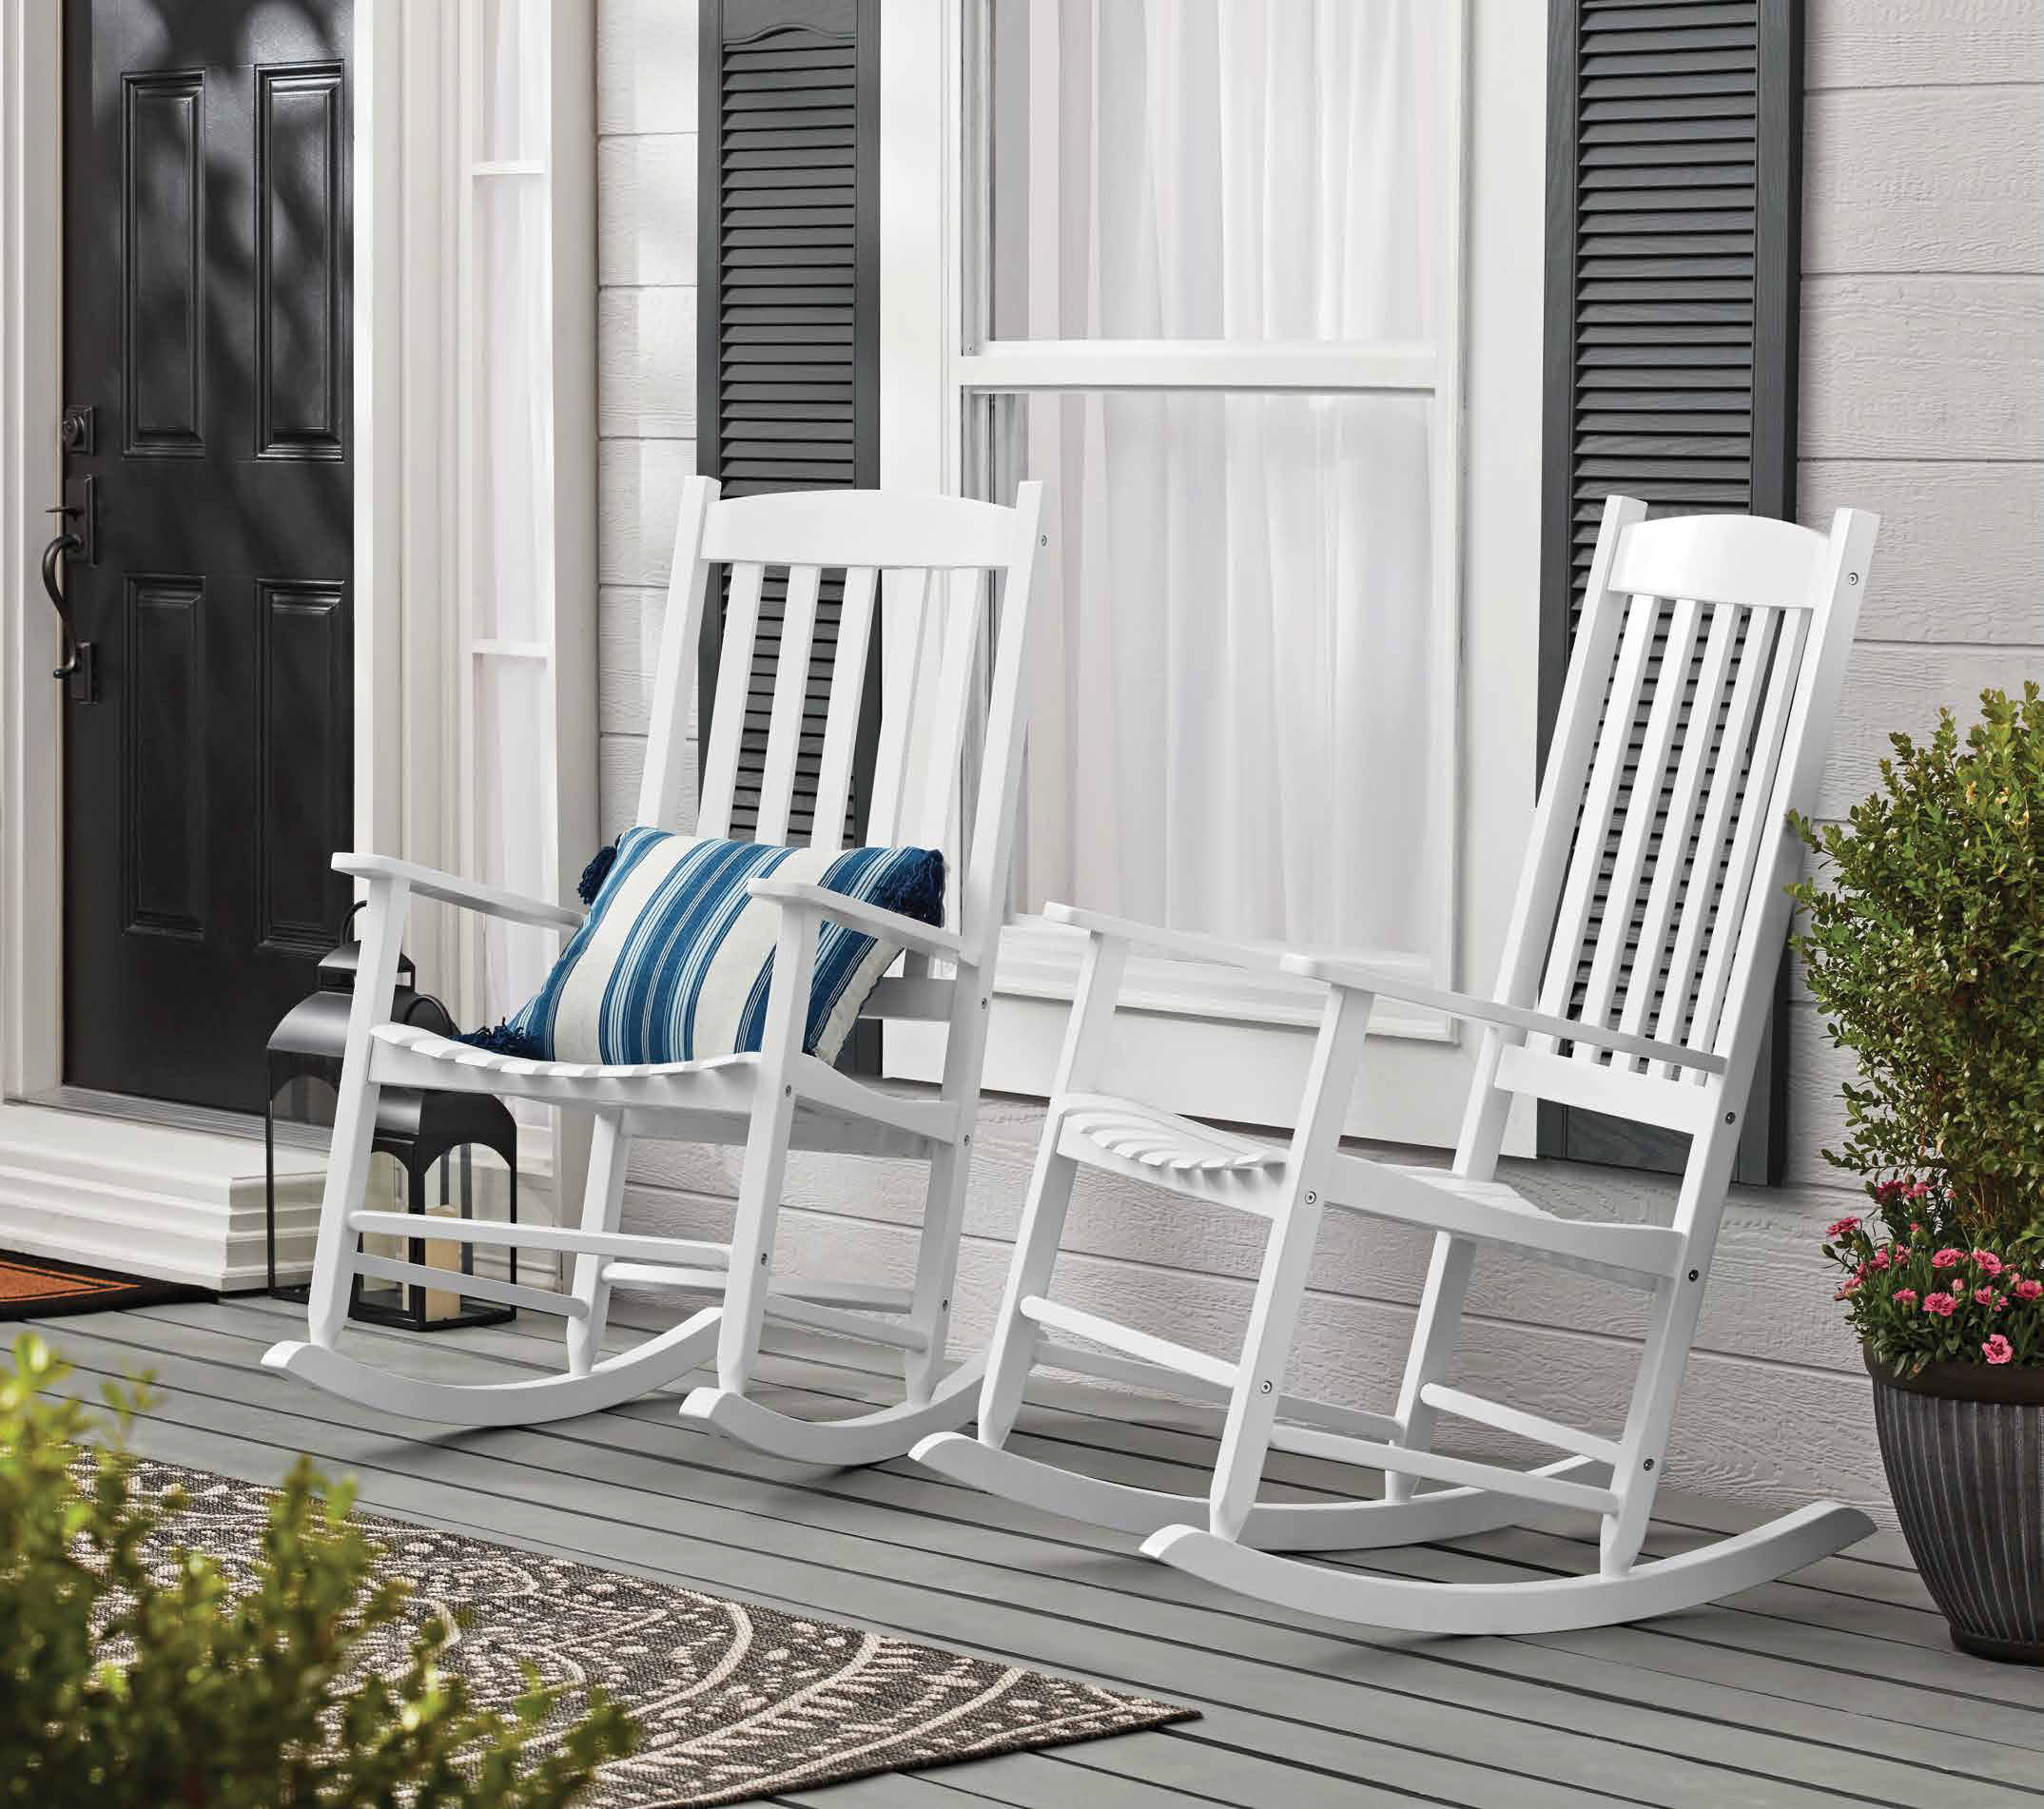 mainstays outdoor wood porch rocking chair white color weather resistant finish walmart com